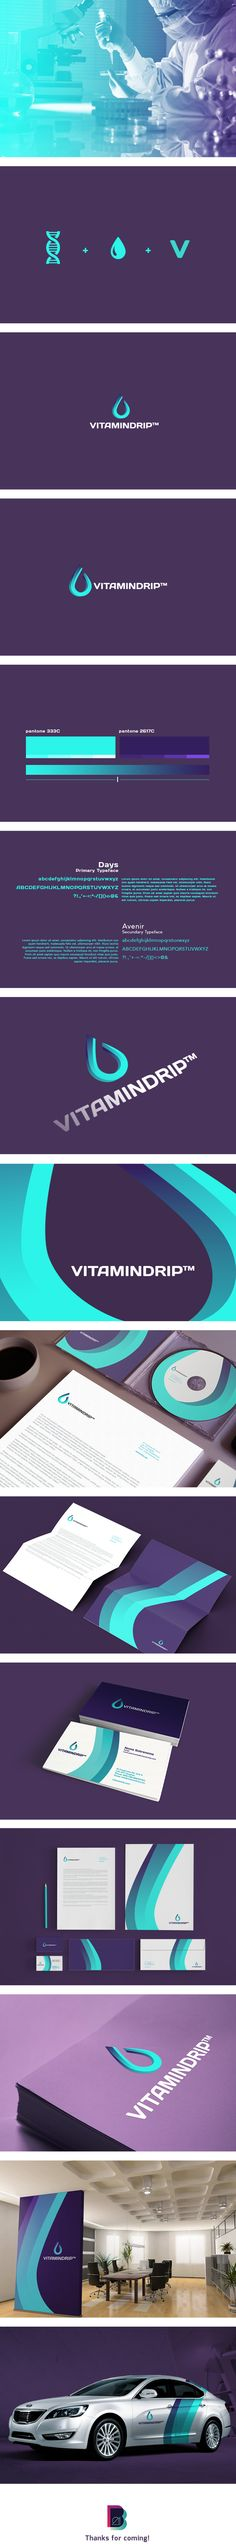 Vitamindrip by B21 Branding Studio, via Behance, branding, graphic design, droplet, shape, colour, concept